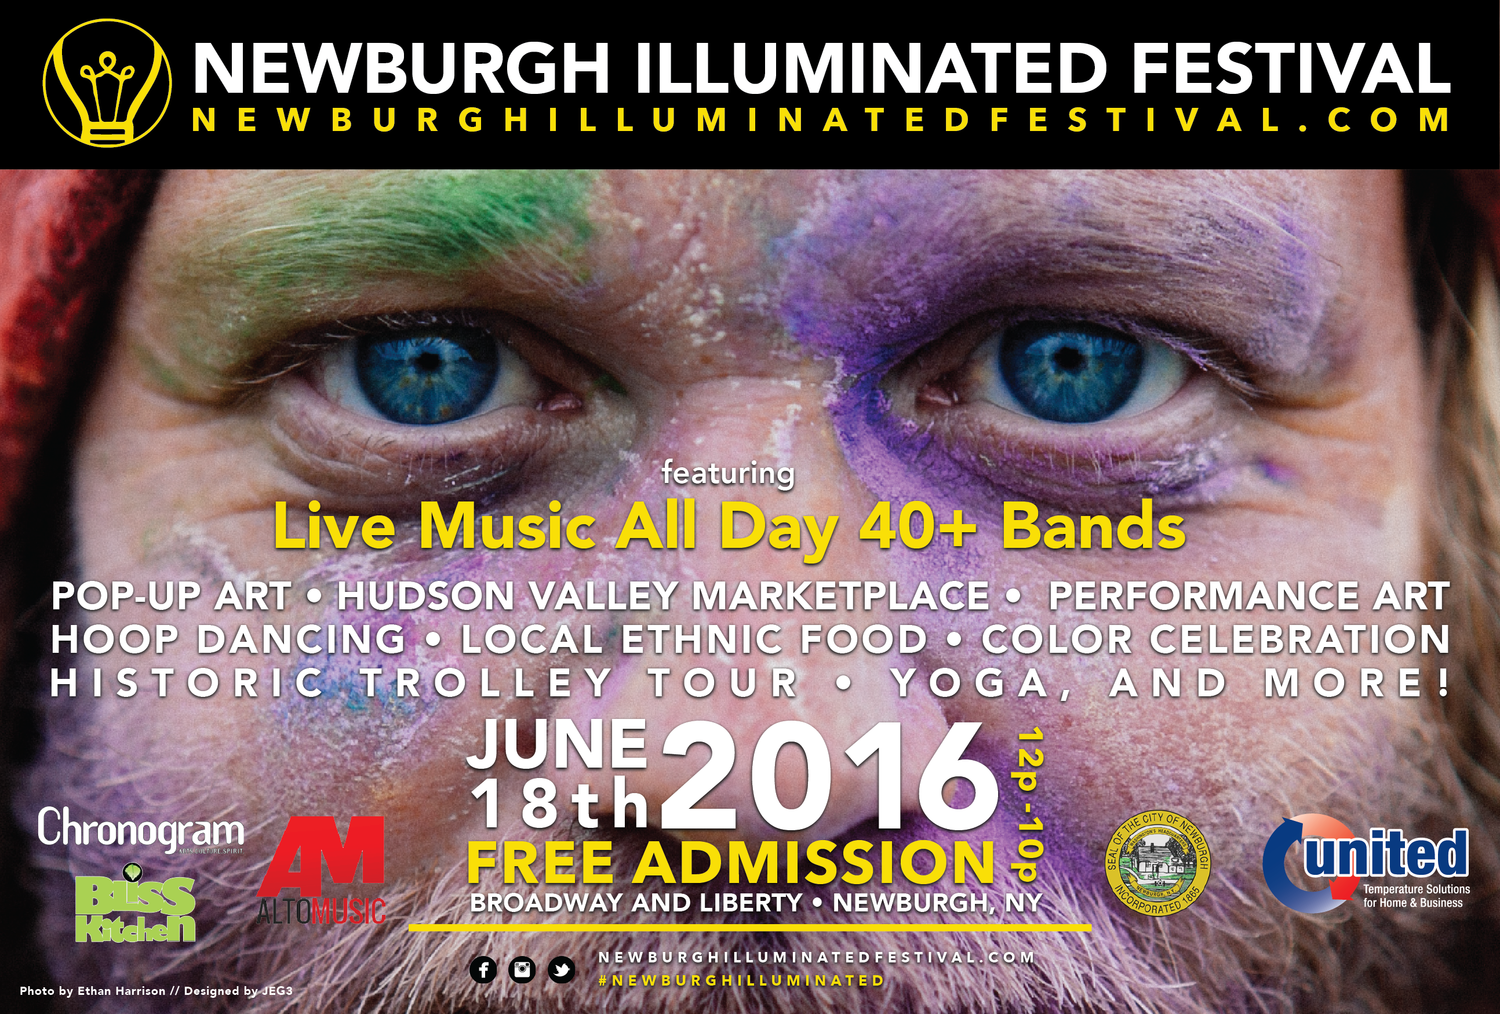 NEWBURGH ILLUMINATED FESTIVAL 2016 Celebrates All That Is Newburgh!  (Images and content posted on Newburgh Illuminated Festival website.)